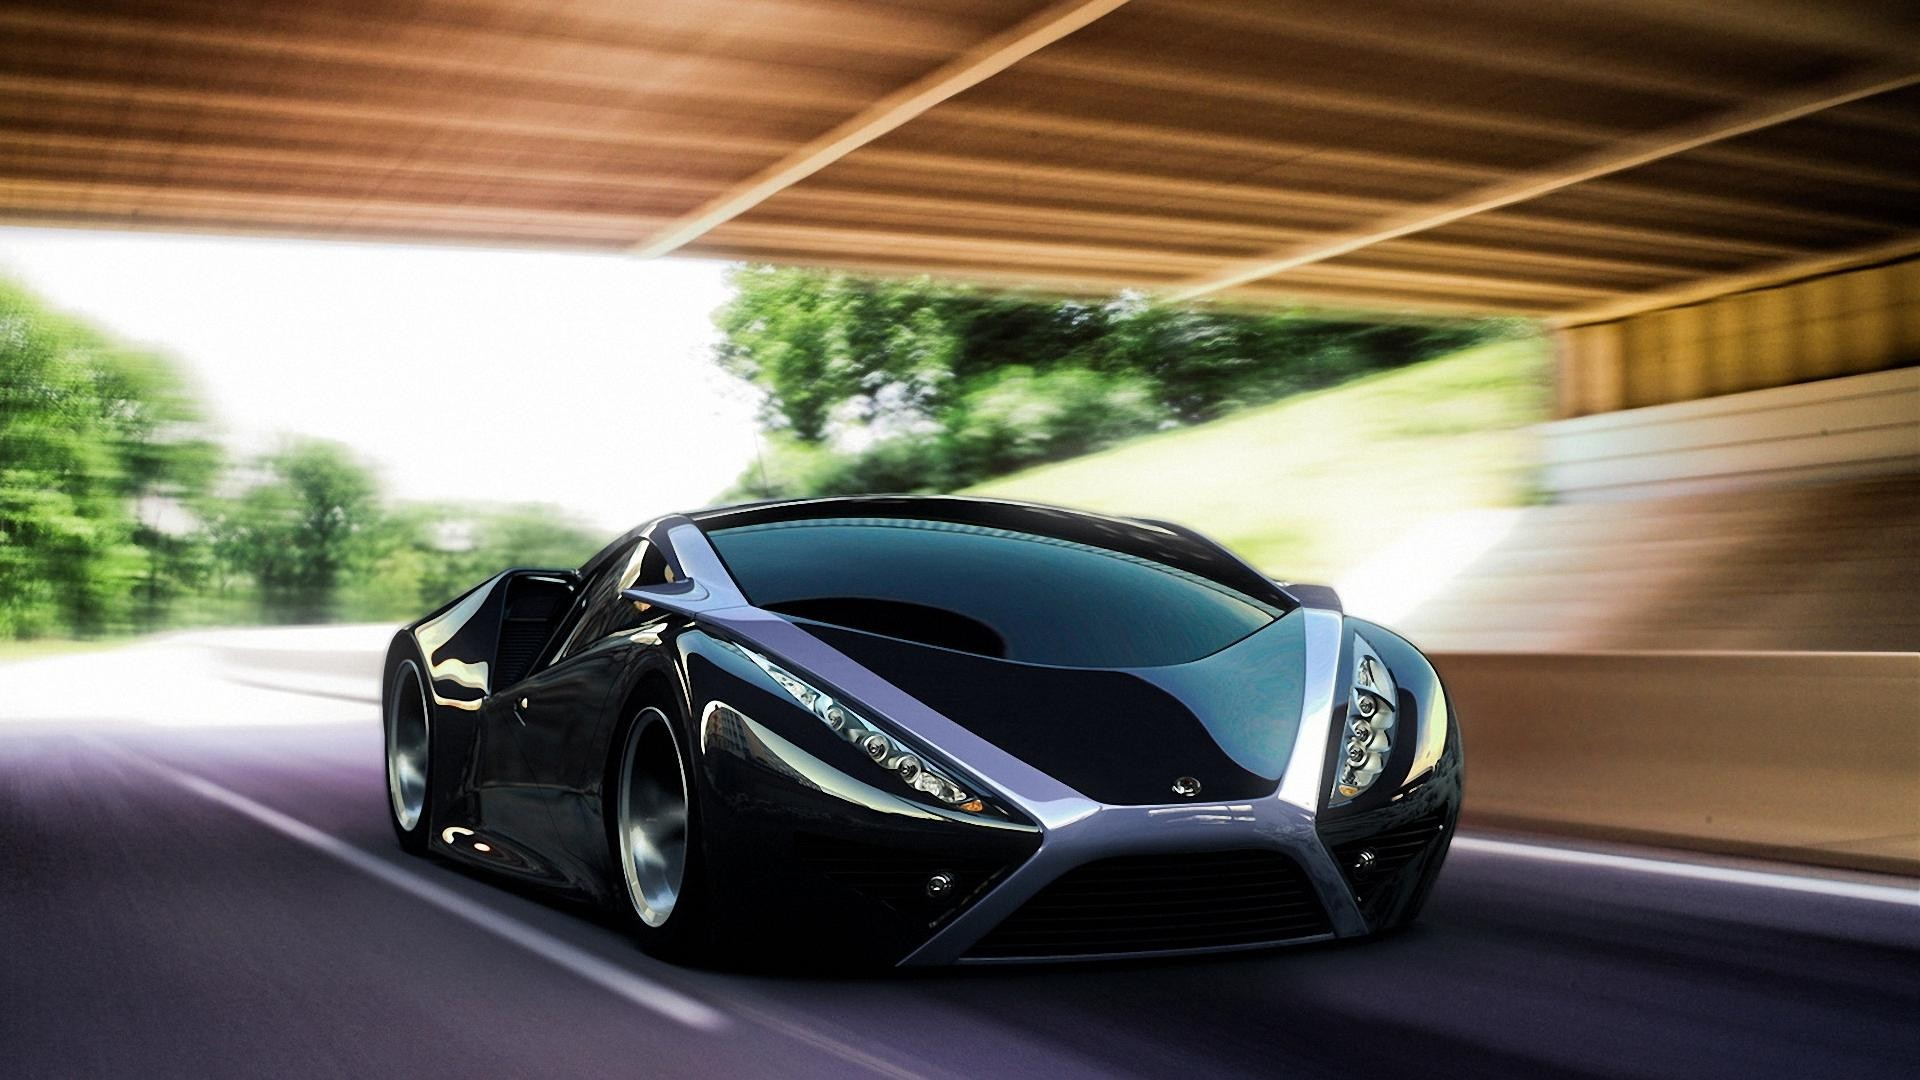 cars motion blur HD Wallpaper